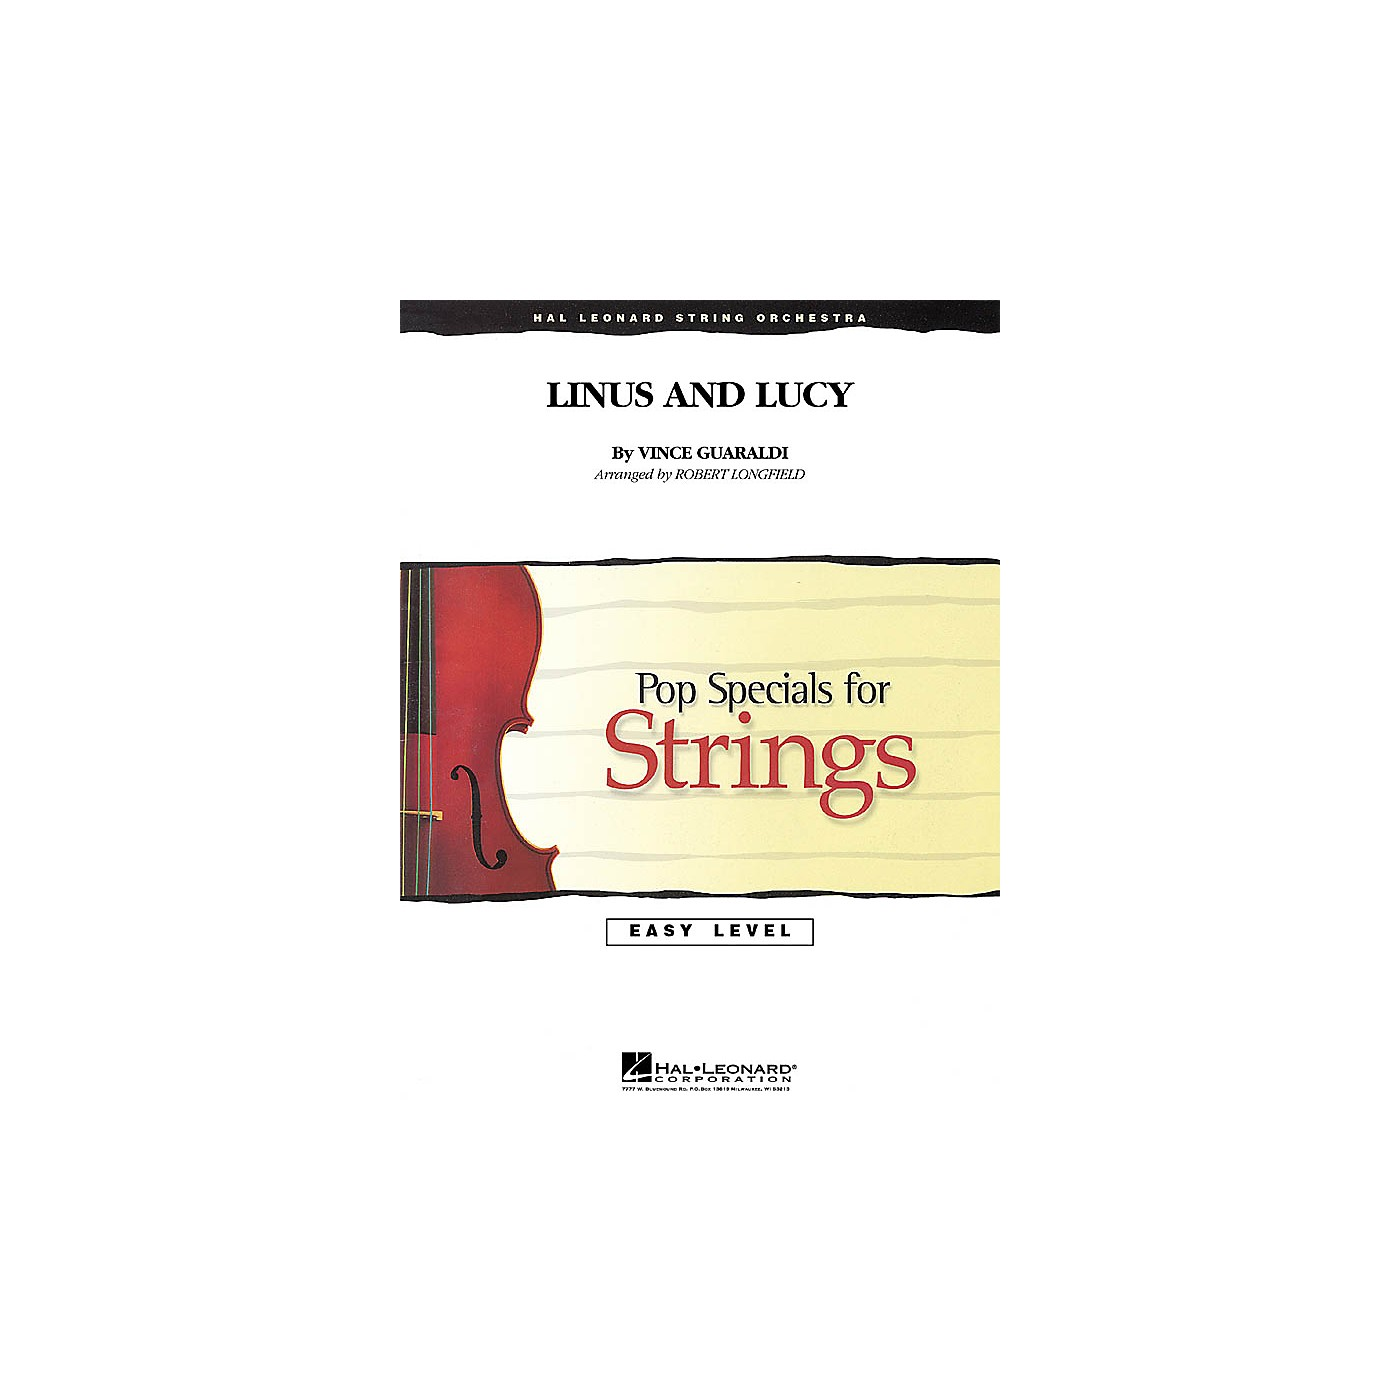 Hal Leonard Linus and Lucy Easy Pop Specials For Strings Series Arranged by Robert Longfield thumbnail